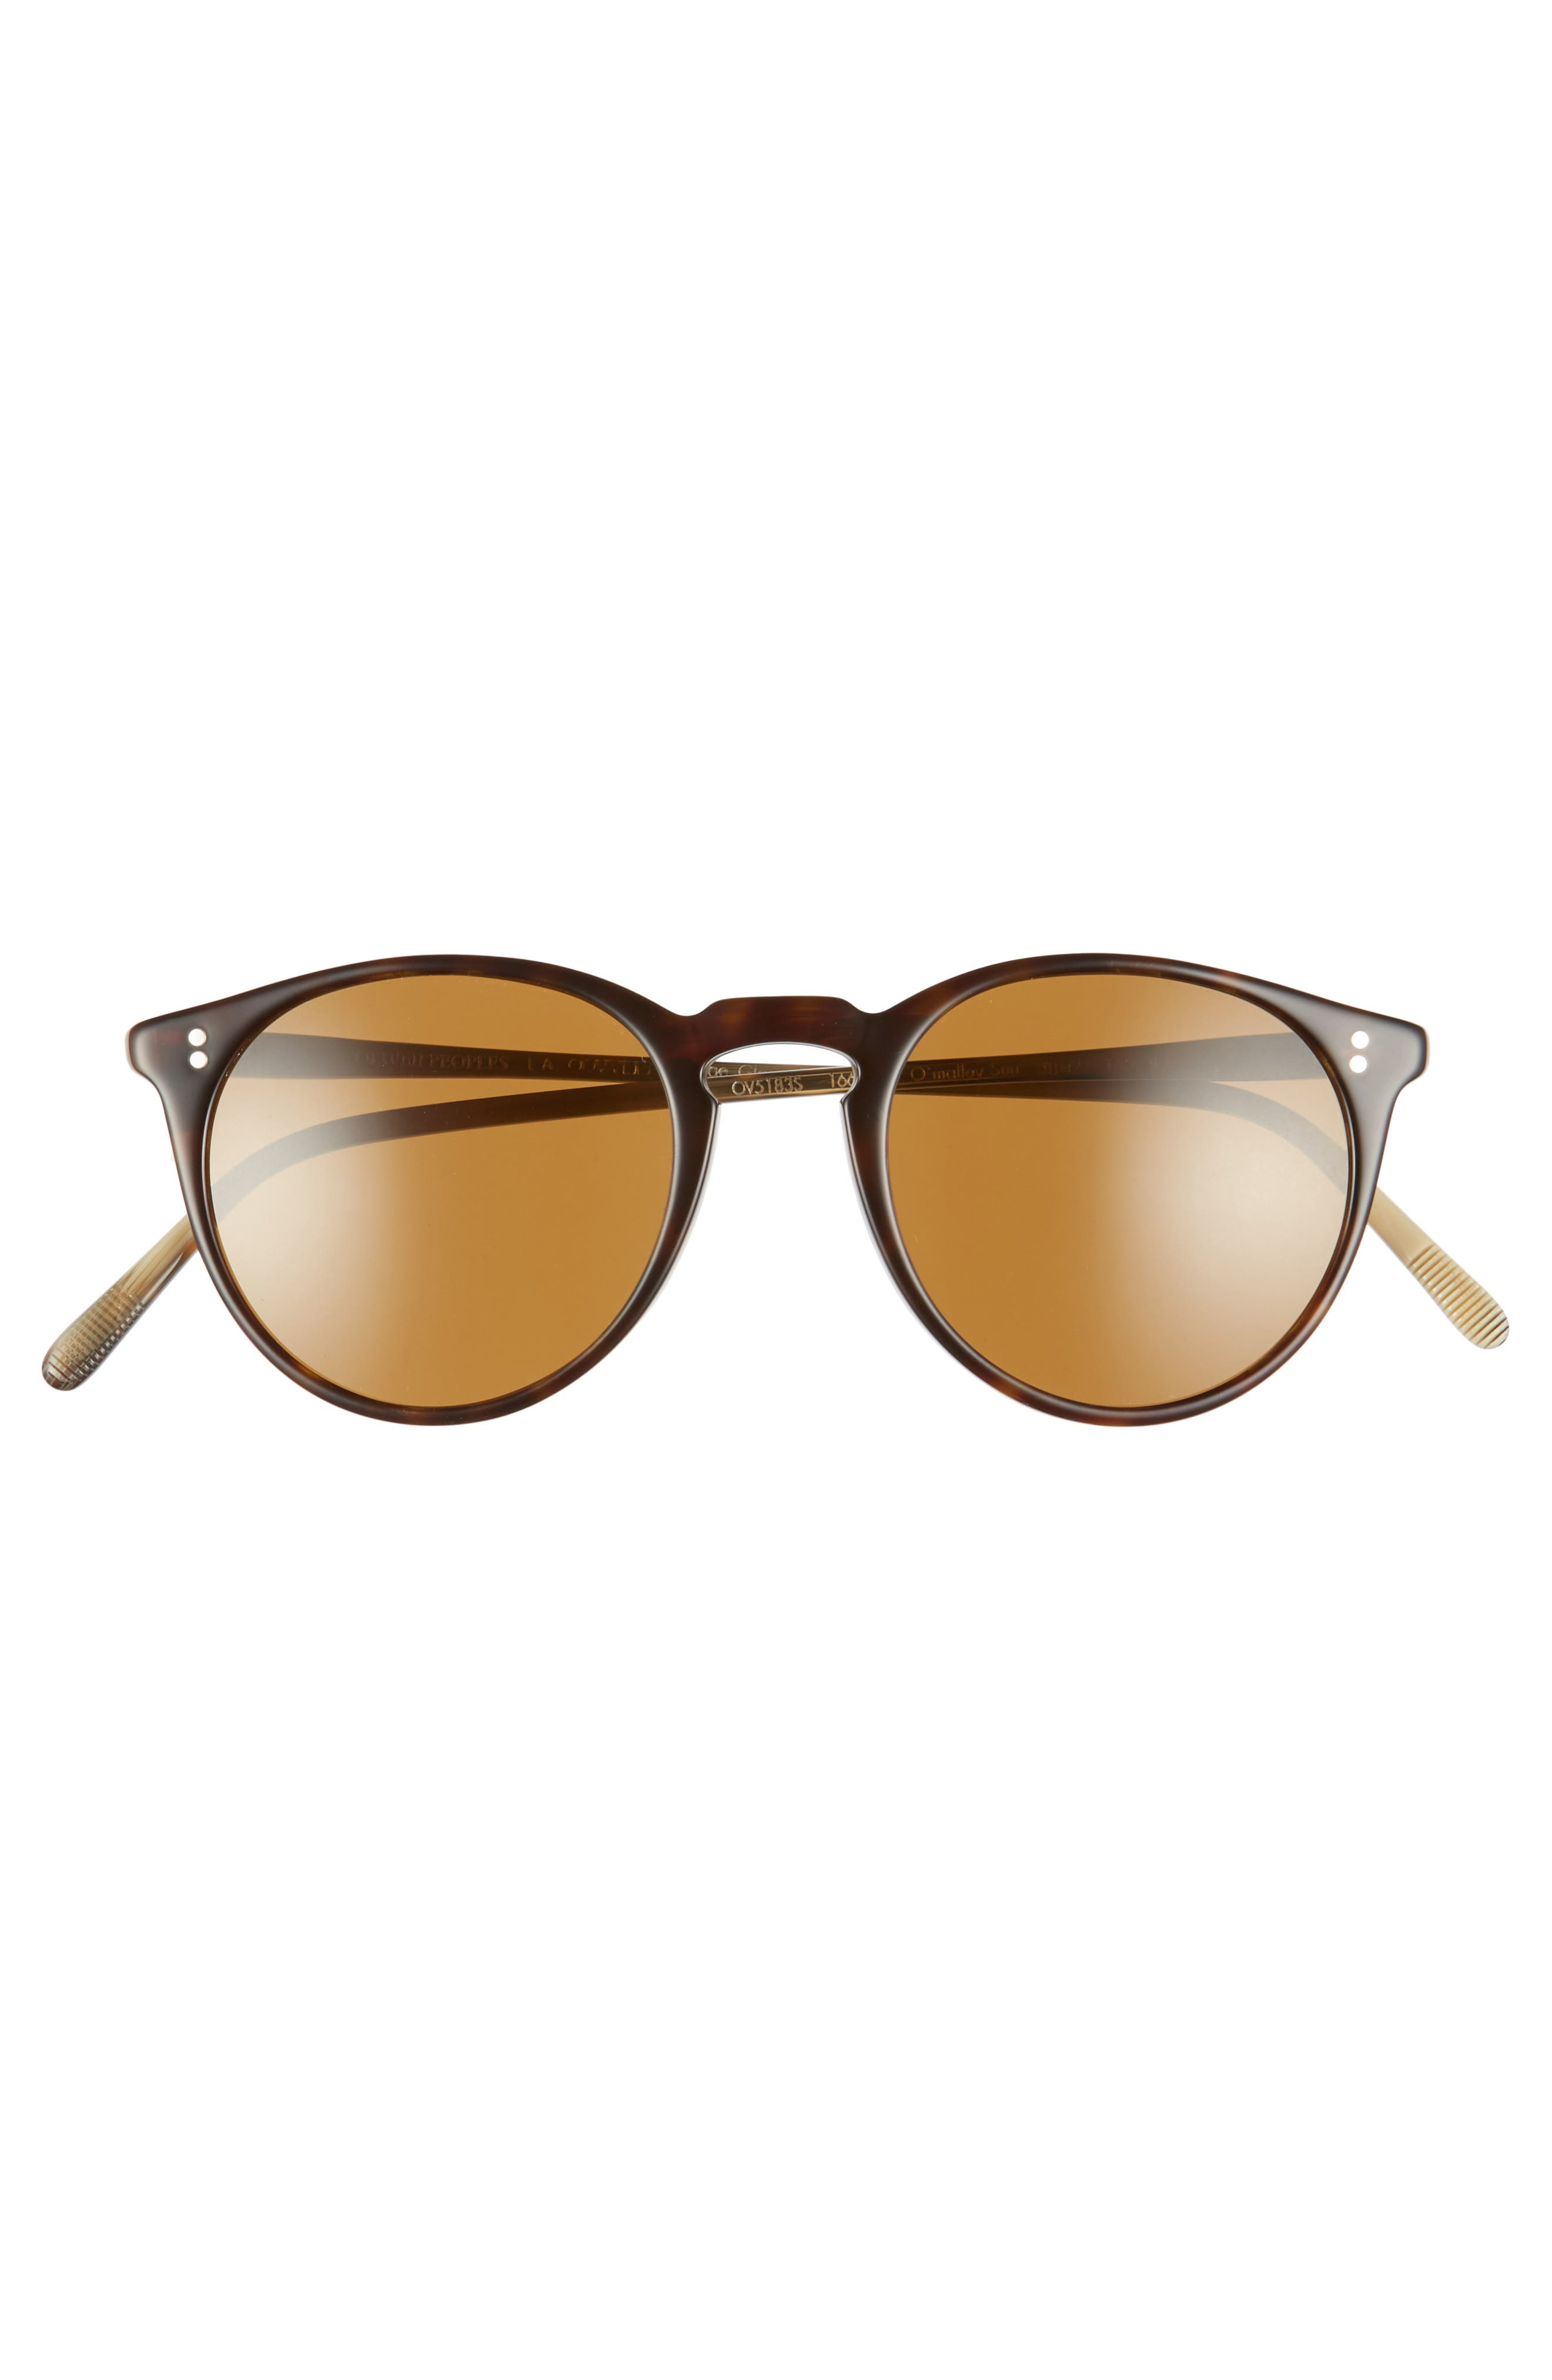 O'Malley 48mm Round Sunglasses,                             Alternate thumbnail 3, color,                             HORN BROWN